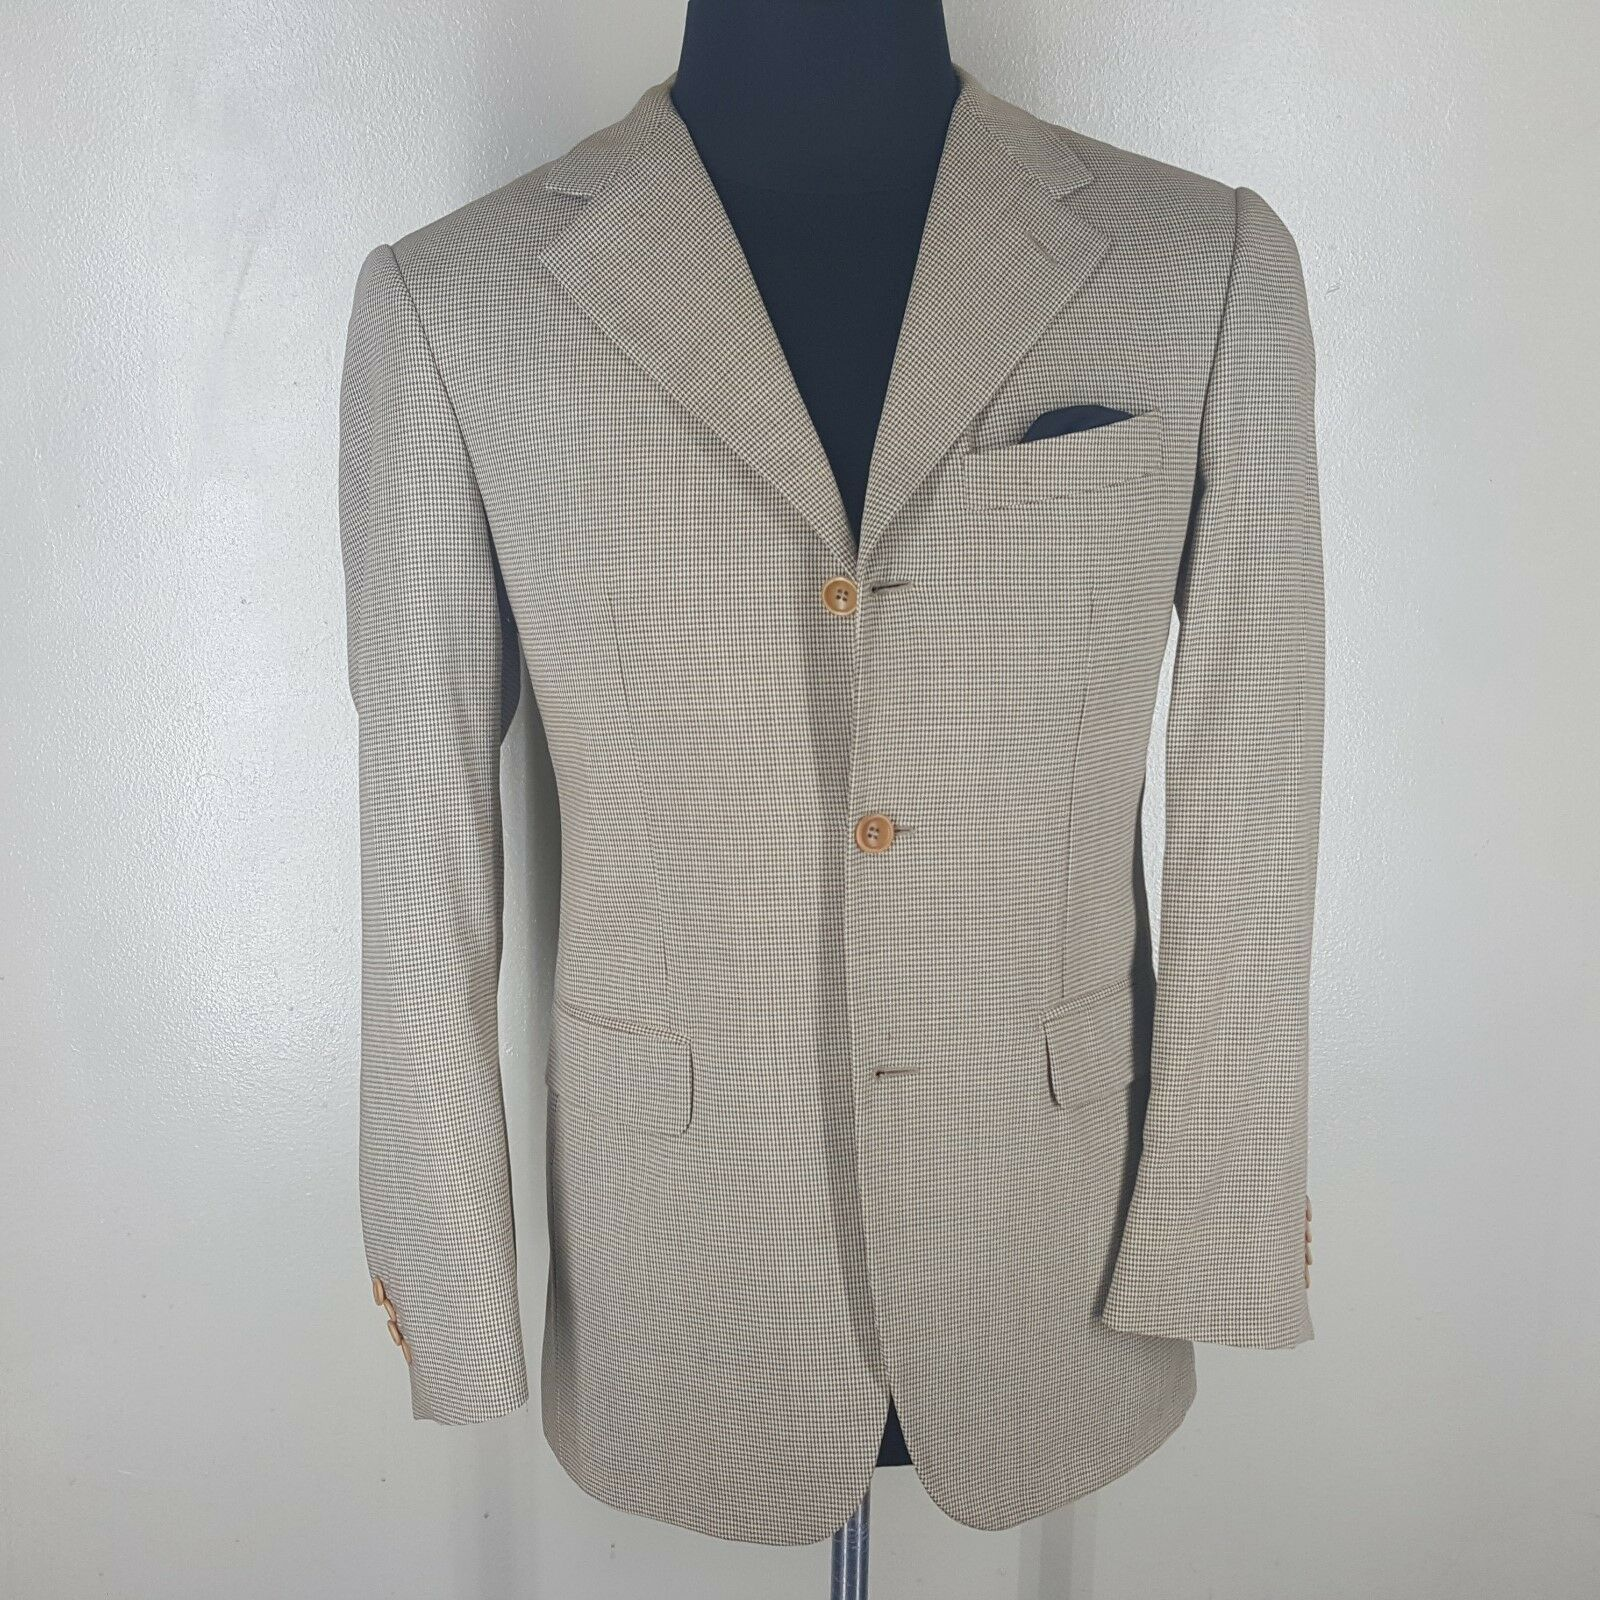 EREDI PISANO Sport Coat  3 Btn Side Vents  100% Lgold Piana Wool 38R Fit 40R-42 R